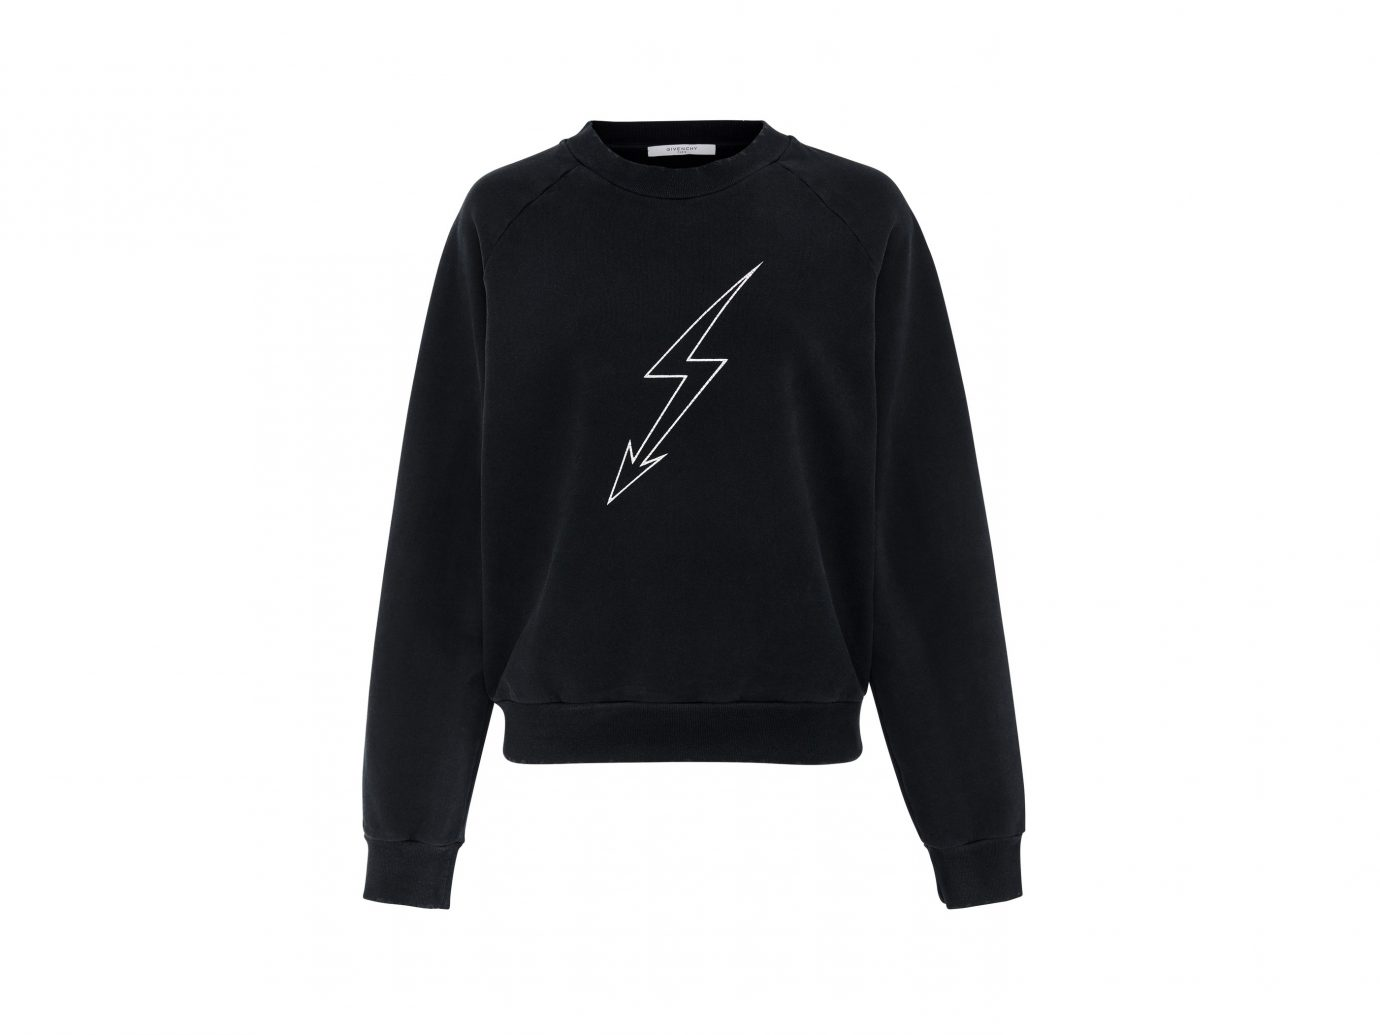 best sweatshirts,Givenchy Lightning Bolt Cotton-Jersey Sweatshirt